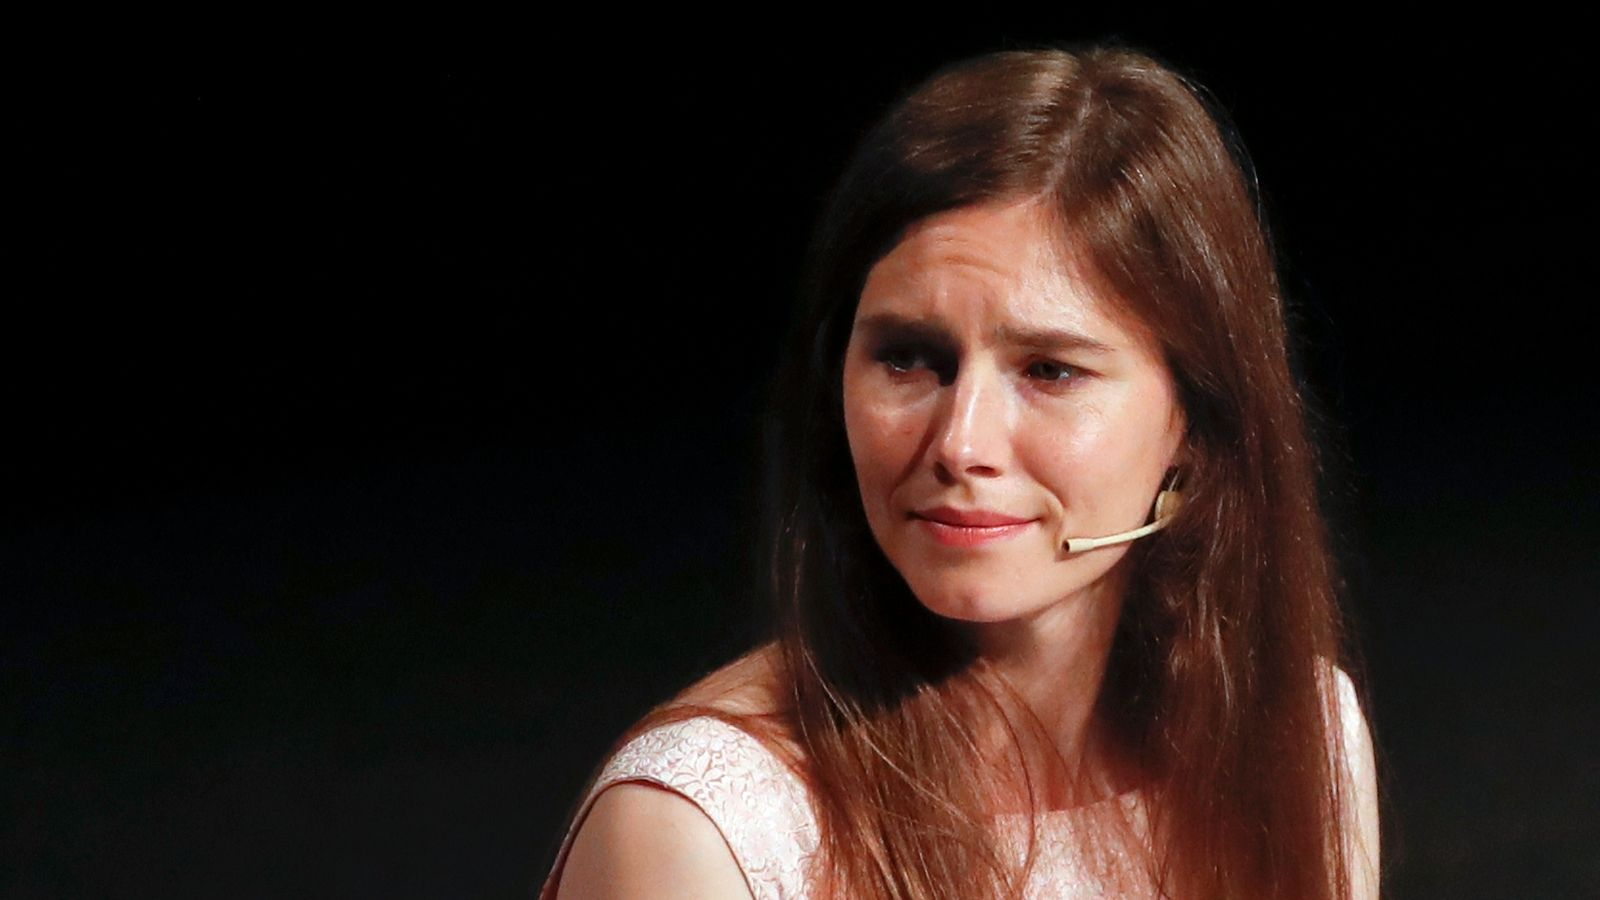 Amanda Knox says Matt Damon film Stillwater rips off her life story 'without her consent'